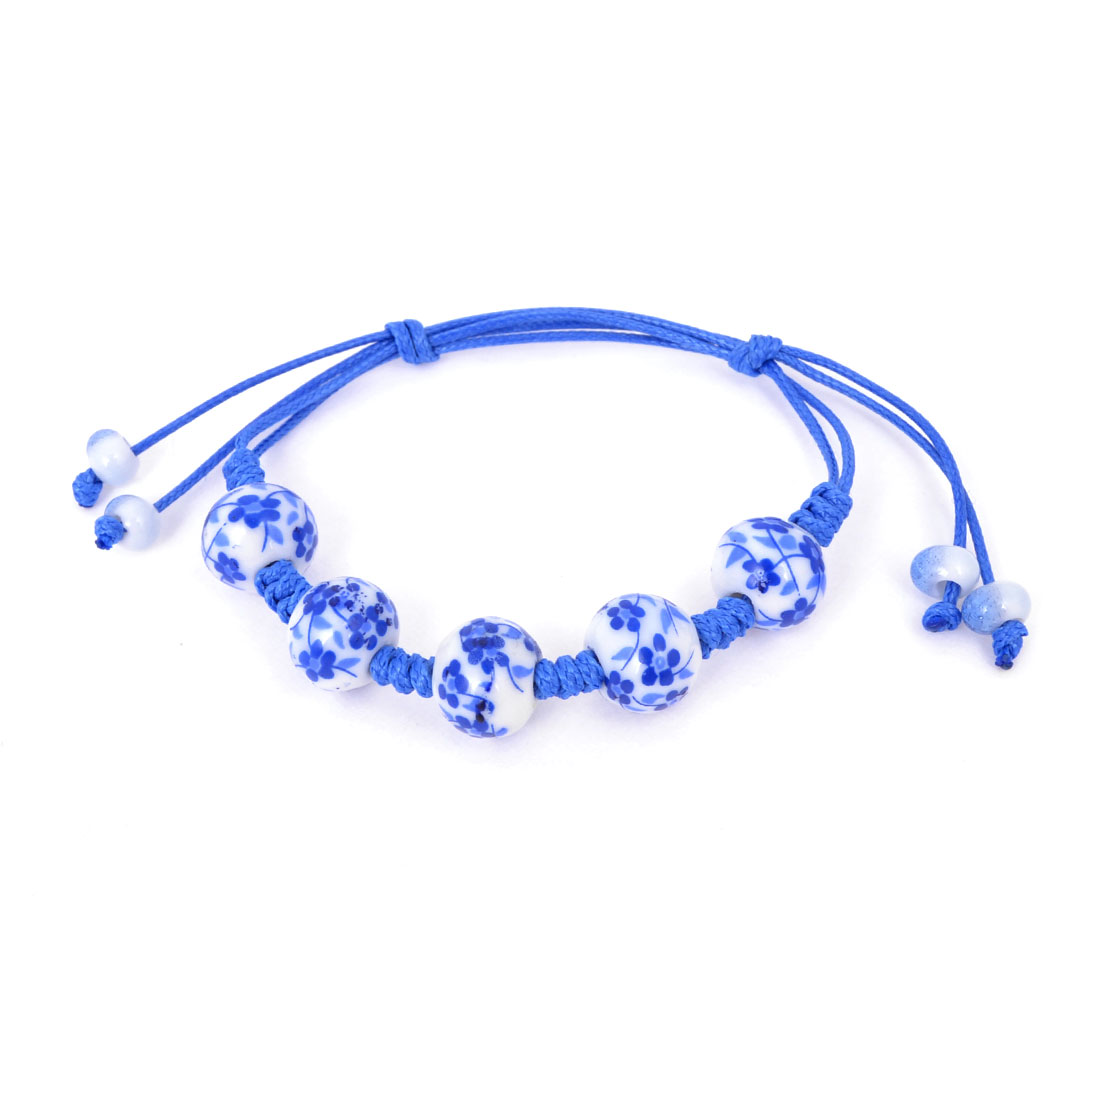 Lady Chinese Style Adjustable Rope Cord Blue-white Porcelain Hand Chain Bracelet